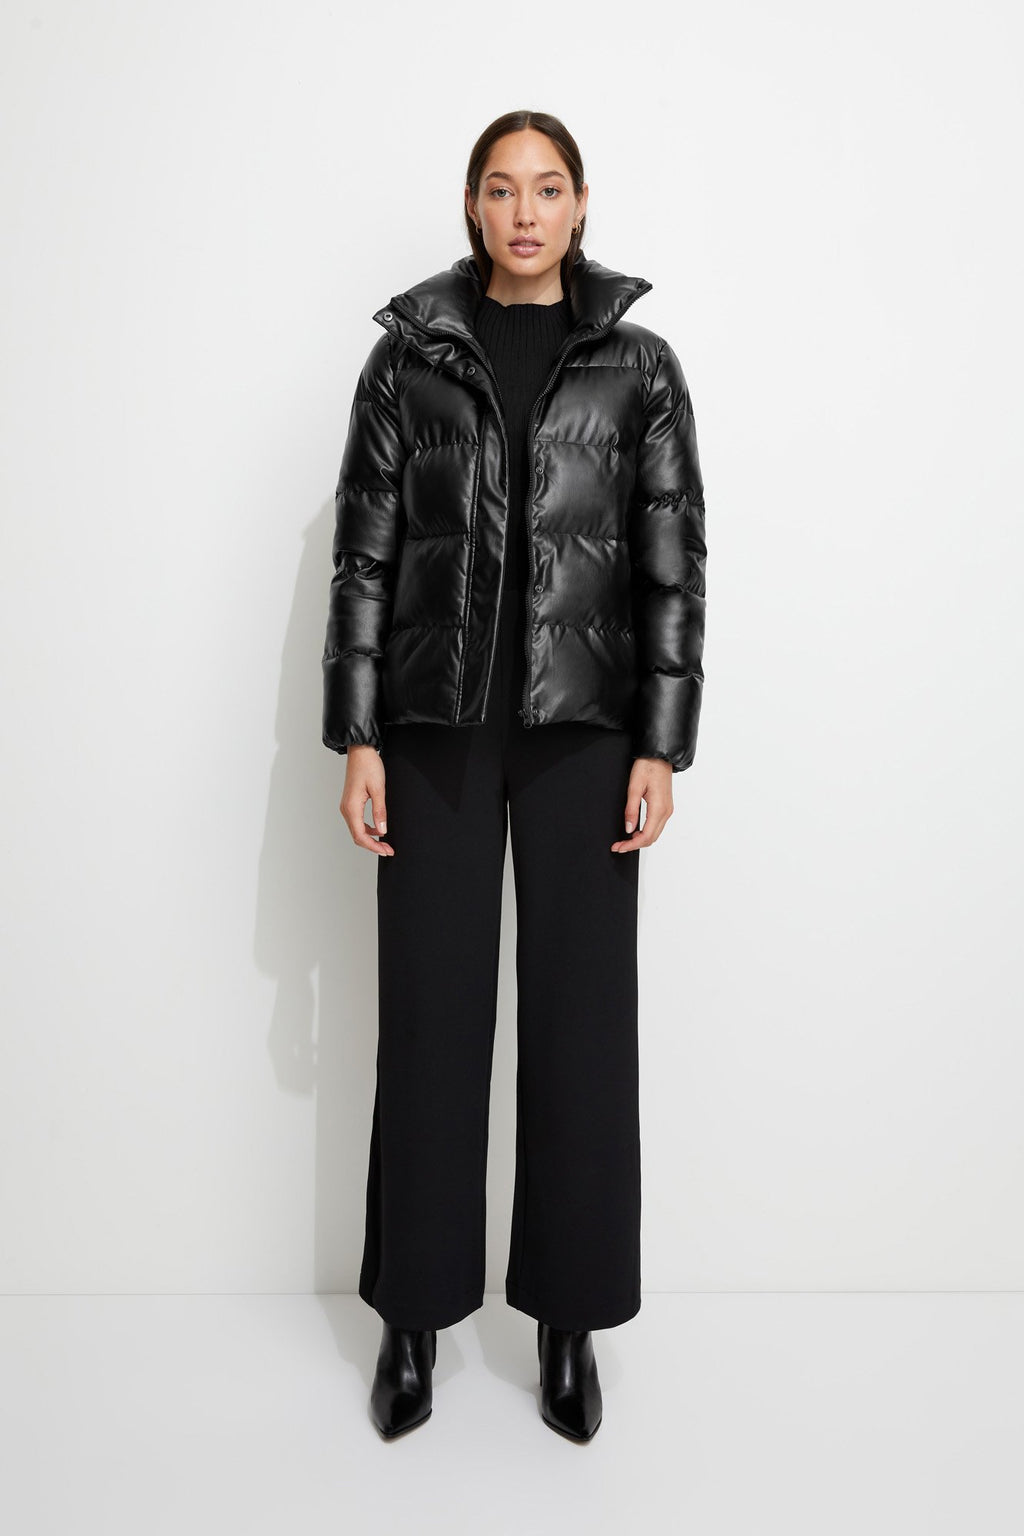 Major Tom Puffer Jacket in Black